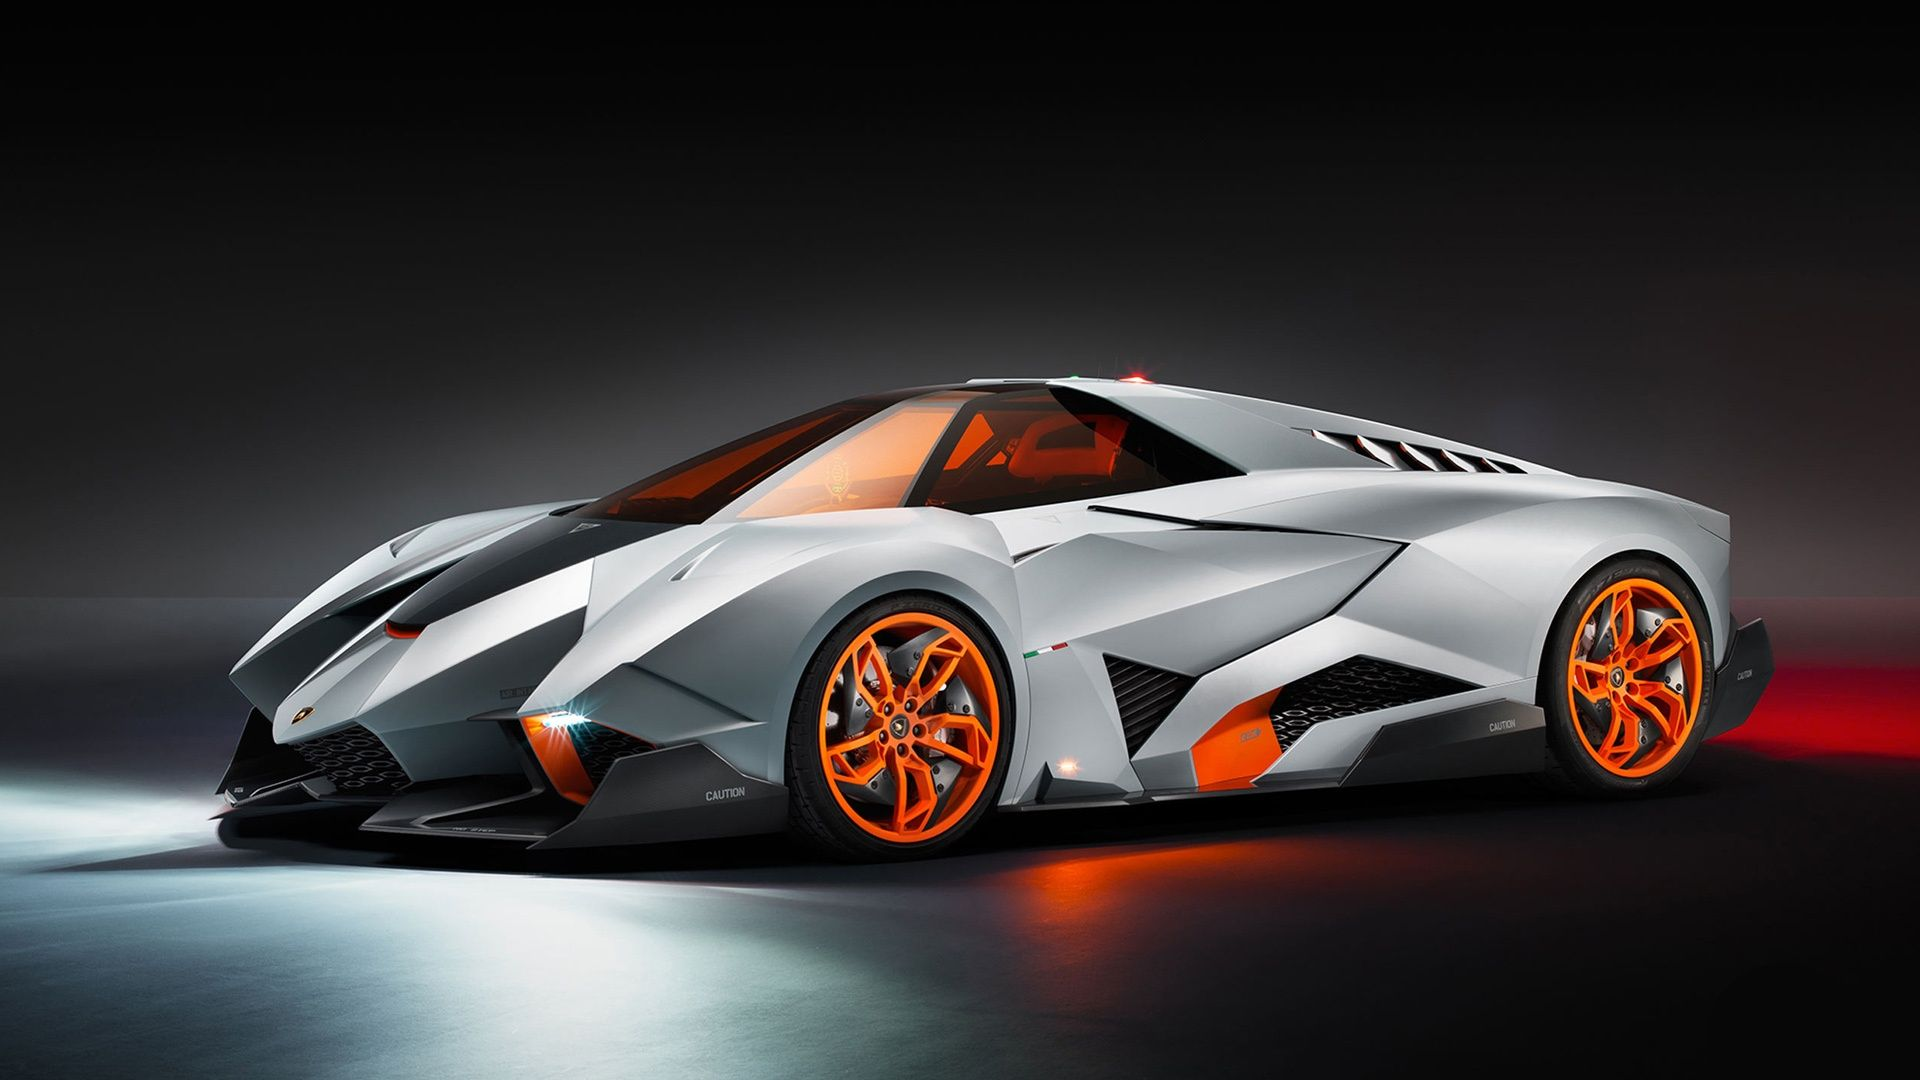 Cool Car Hd Wallpapers 1080p For Your Desktop Wallpapers With Car Hd Wallpapers 1080p Download Hd Wal Futuristic Cars Lamborghini Egoista Future Concept Cars